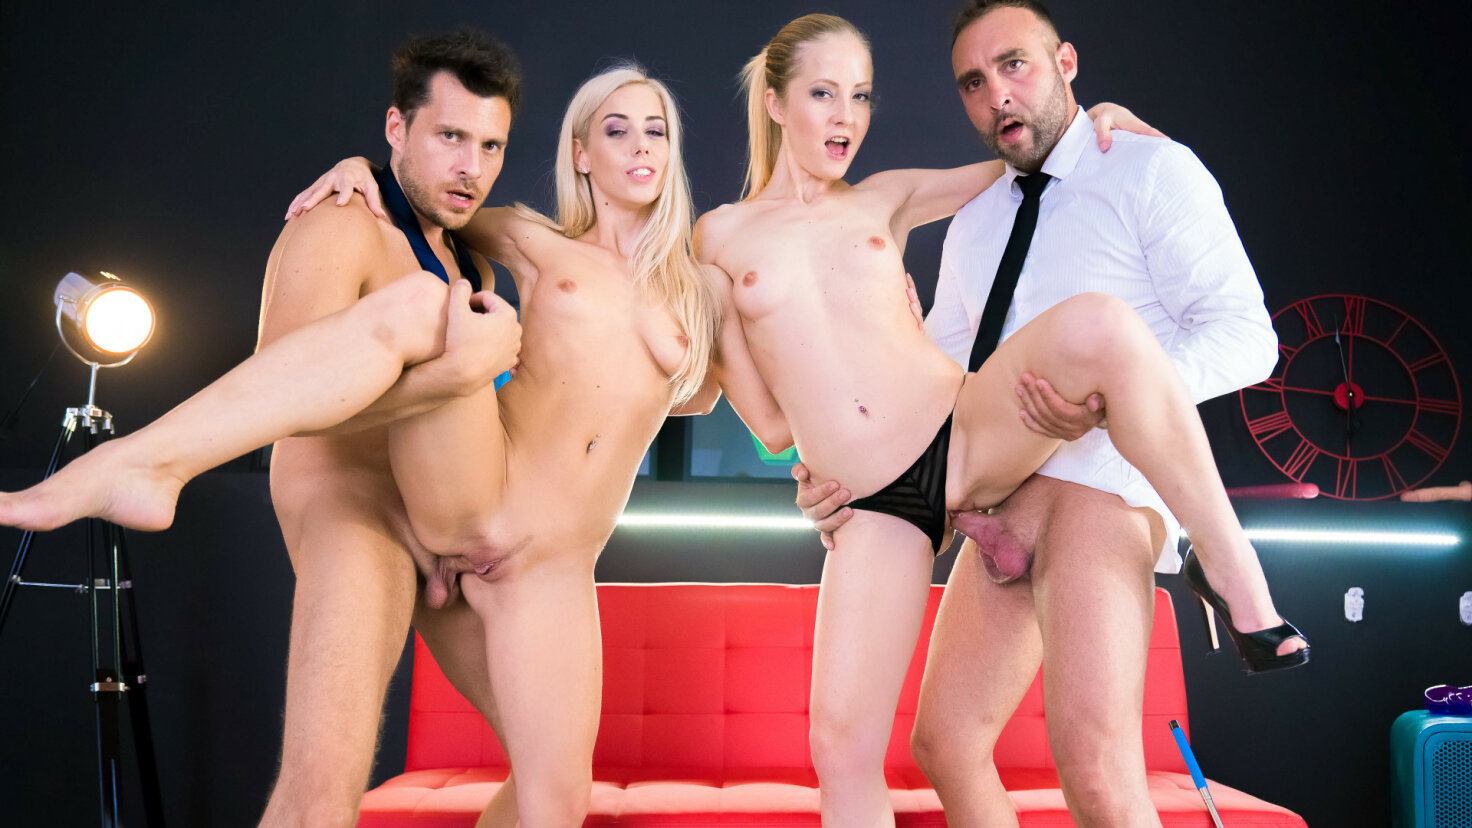 Sweet Hungarian blondie gets consoled in provoking Spanish foursome